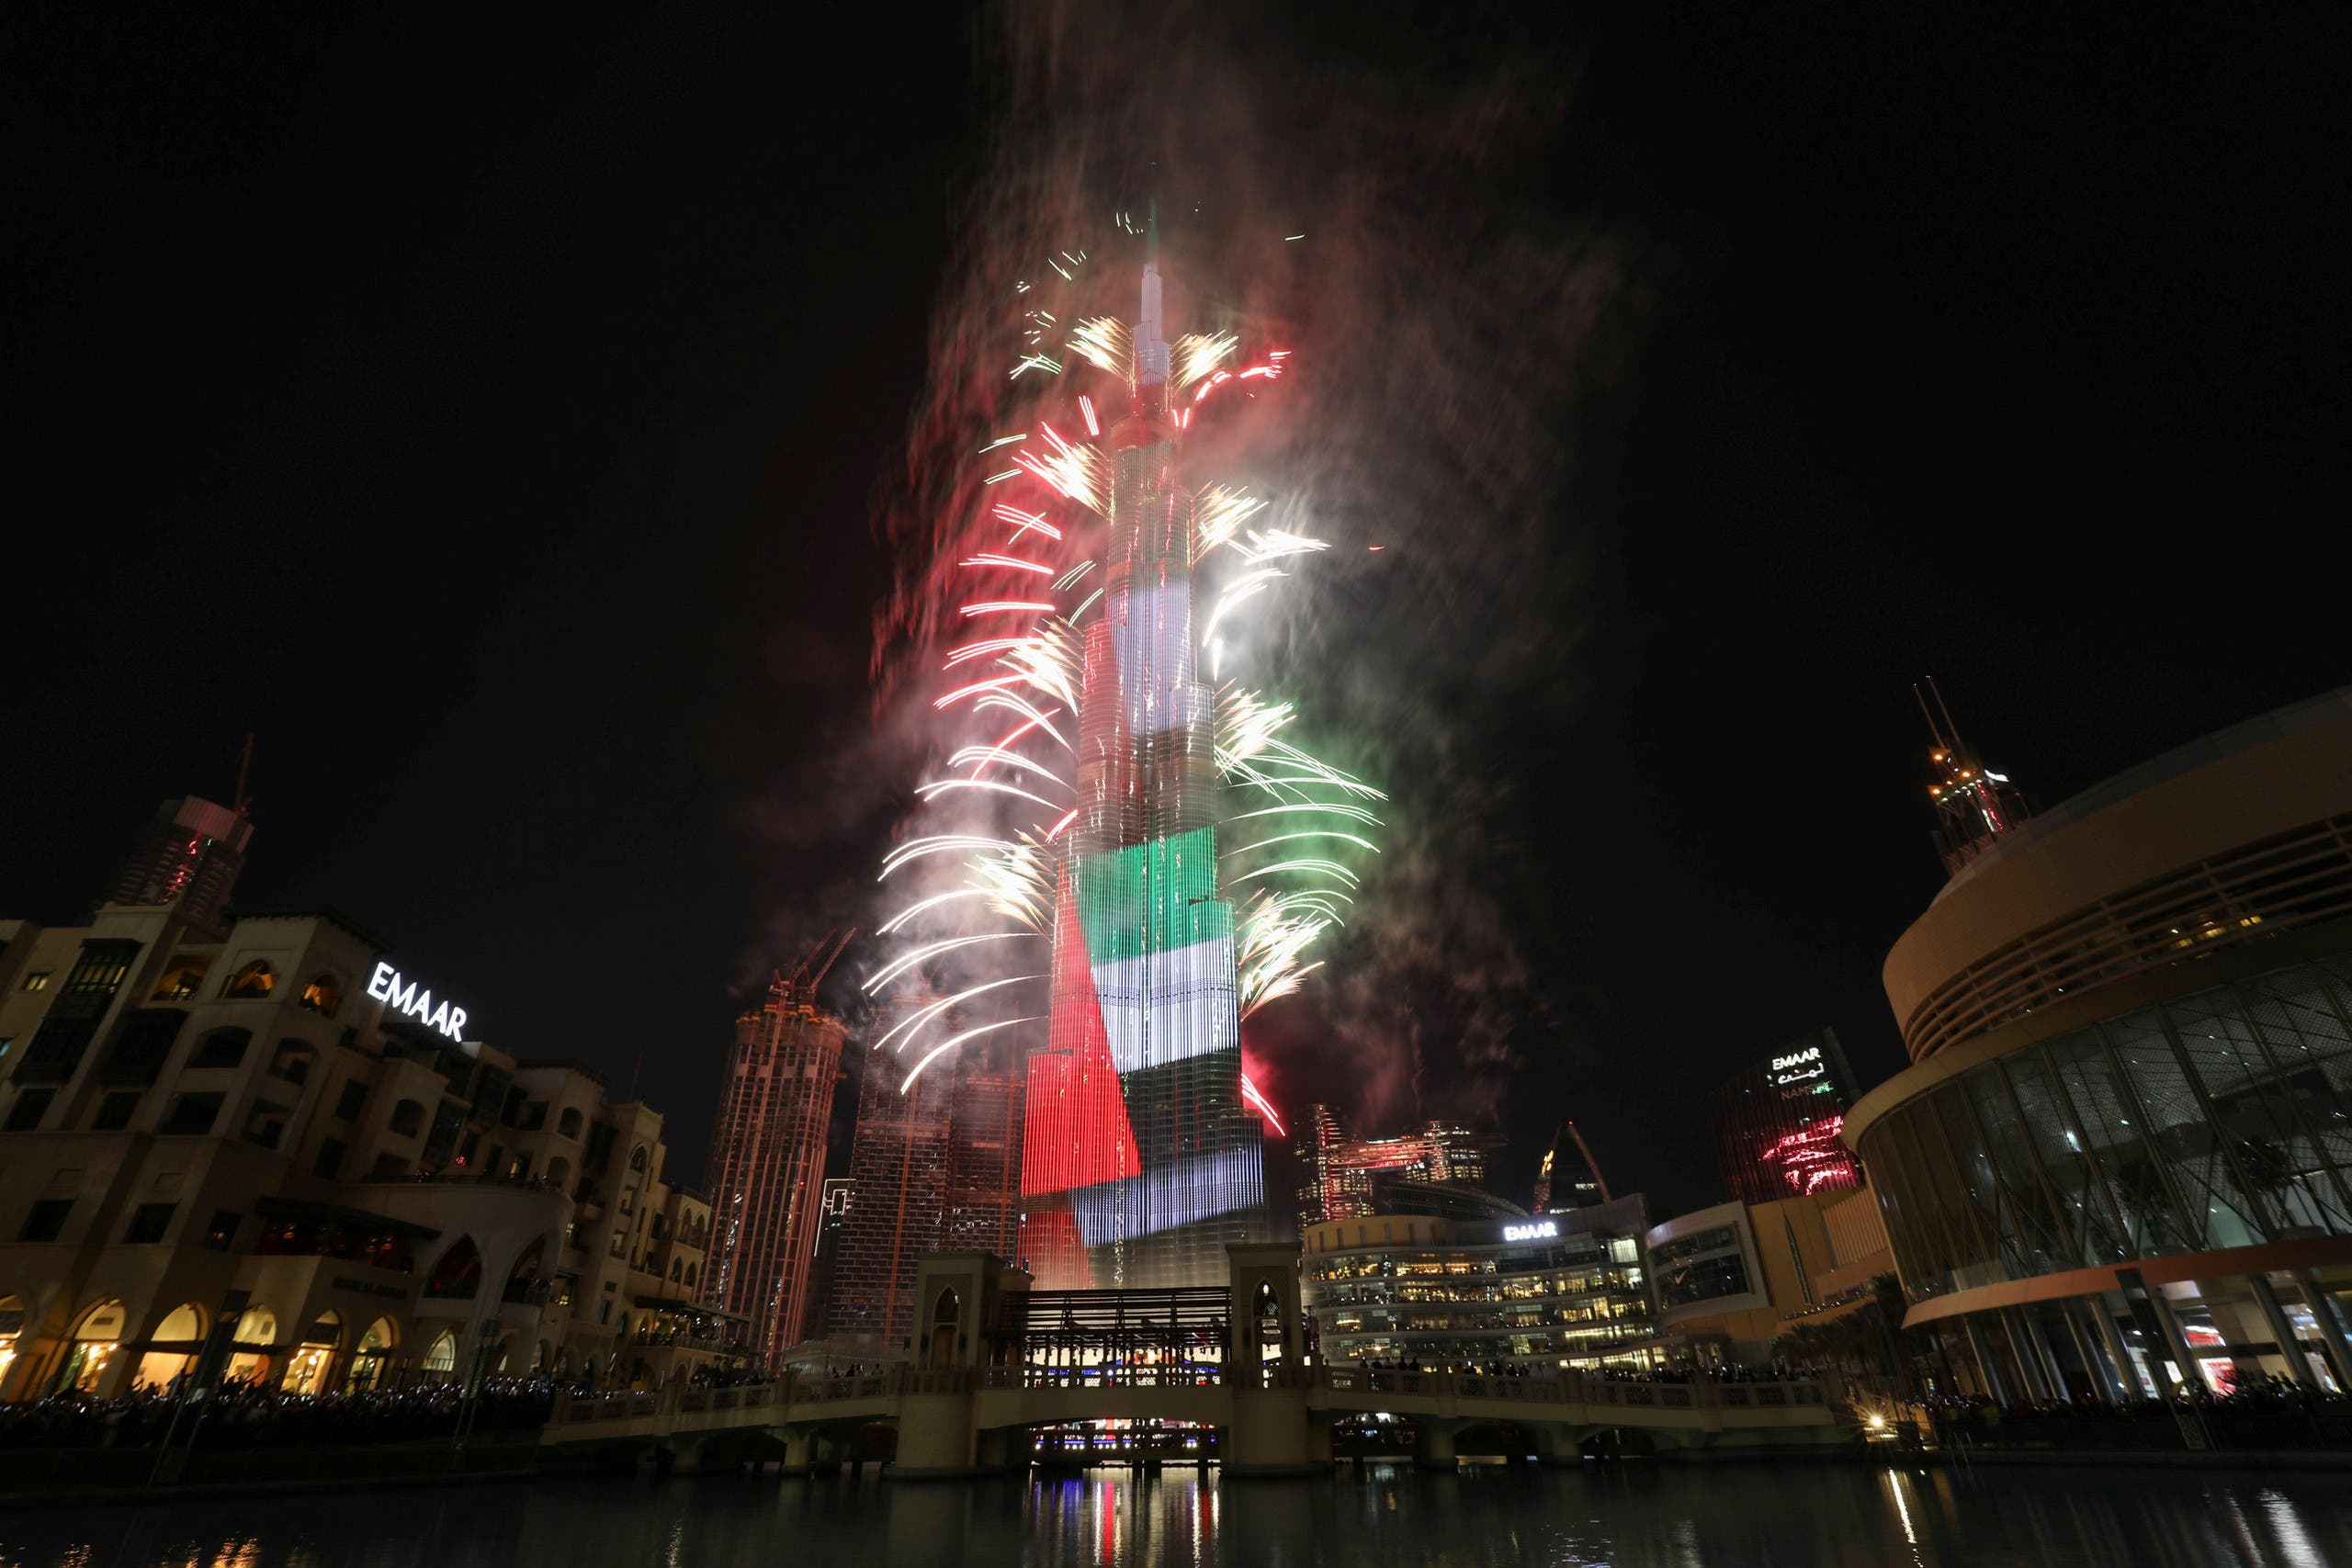 Fireworks explode around the Burj Khalifa, the tallest building in the world, during New Year's celebrations in Dubai. (Photo: AP)